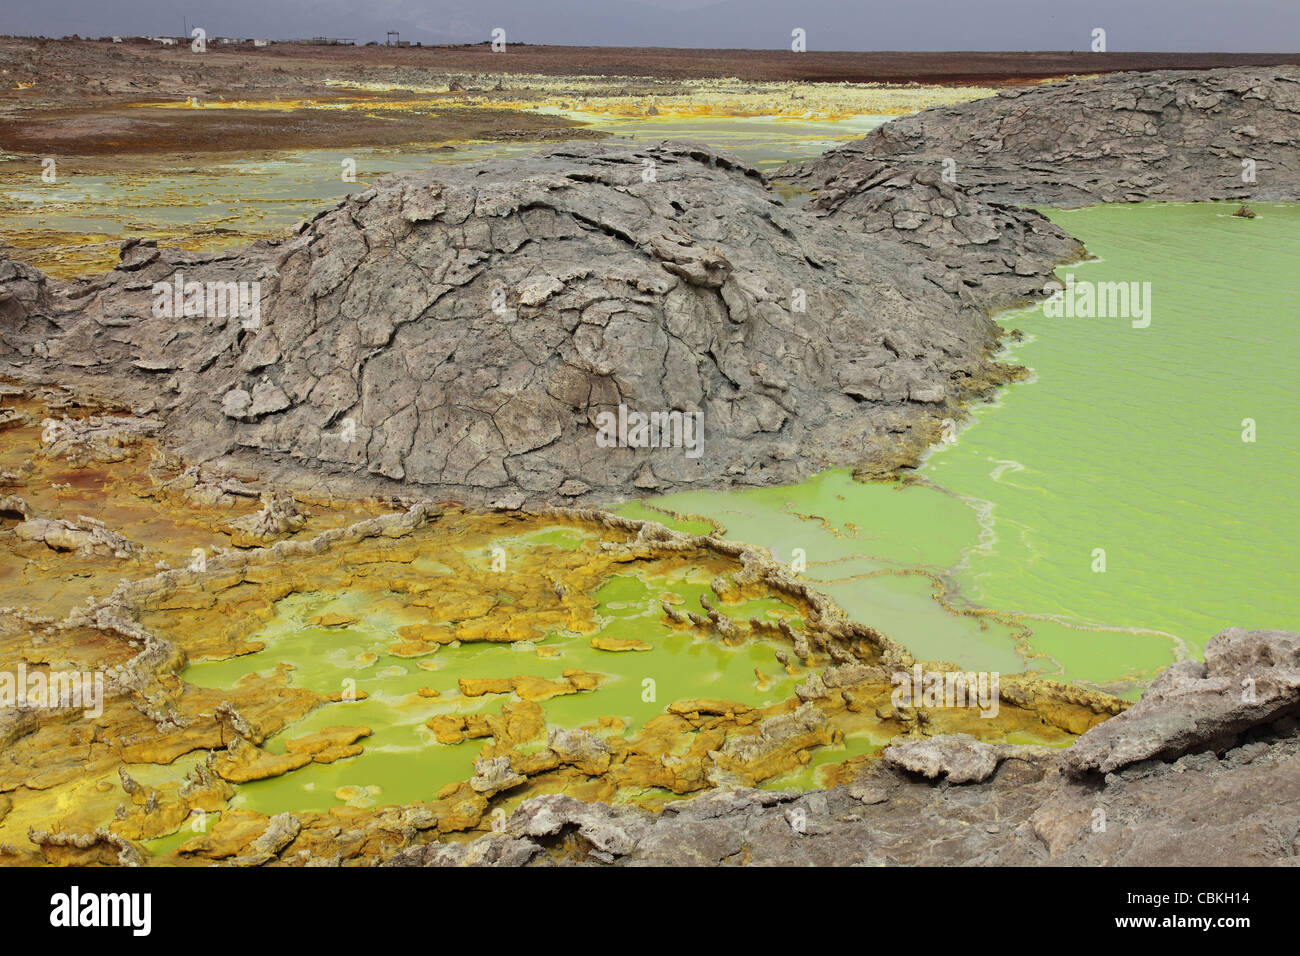 Dallol geothermal area, potassium salt deposits formed by brine hot springs, Danakil Depression, Ethiopia. Stock Photo